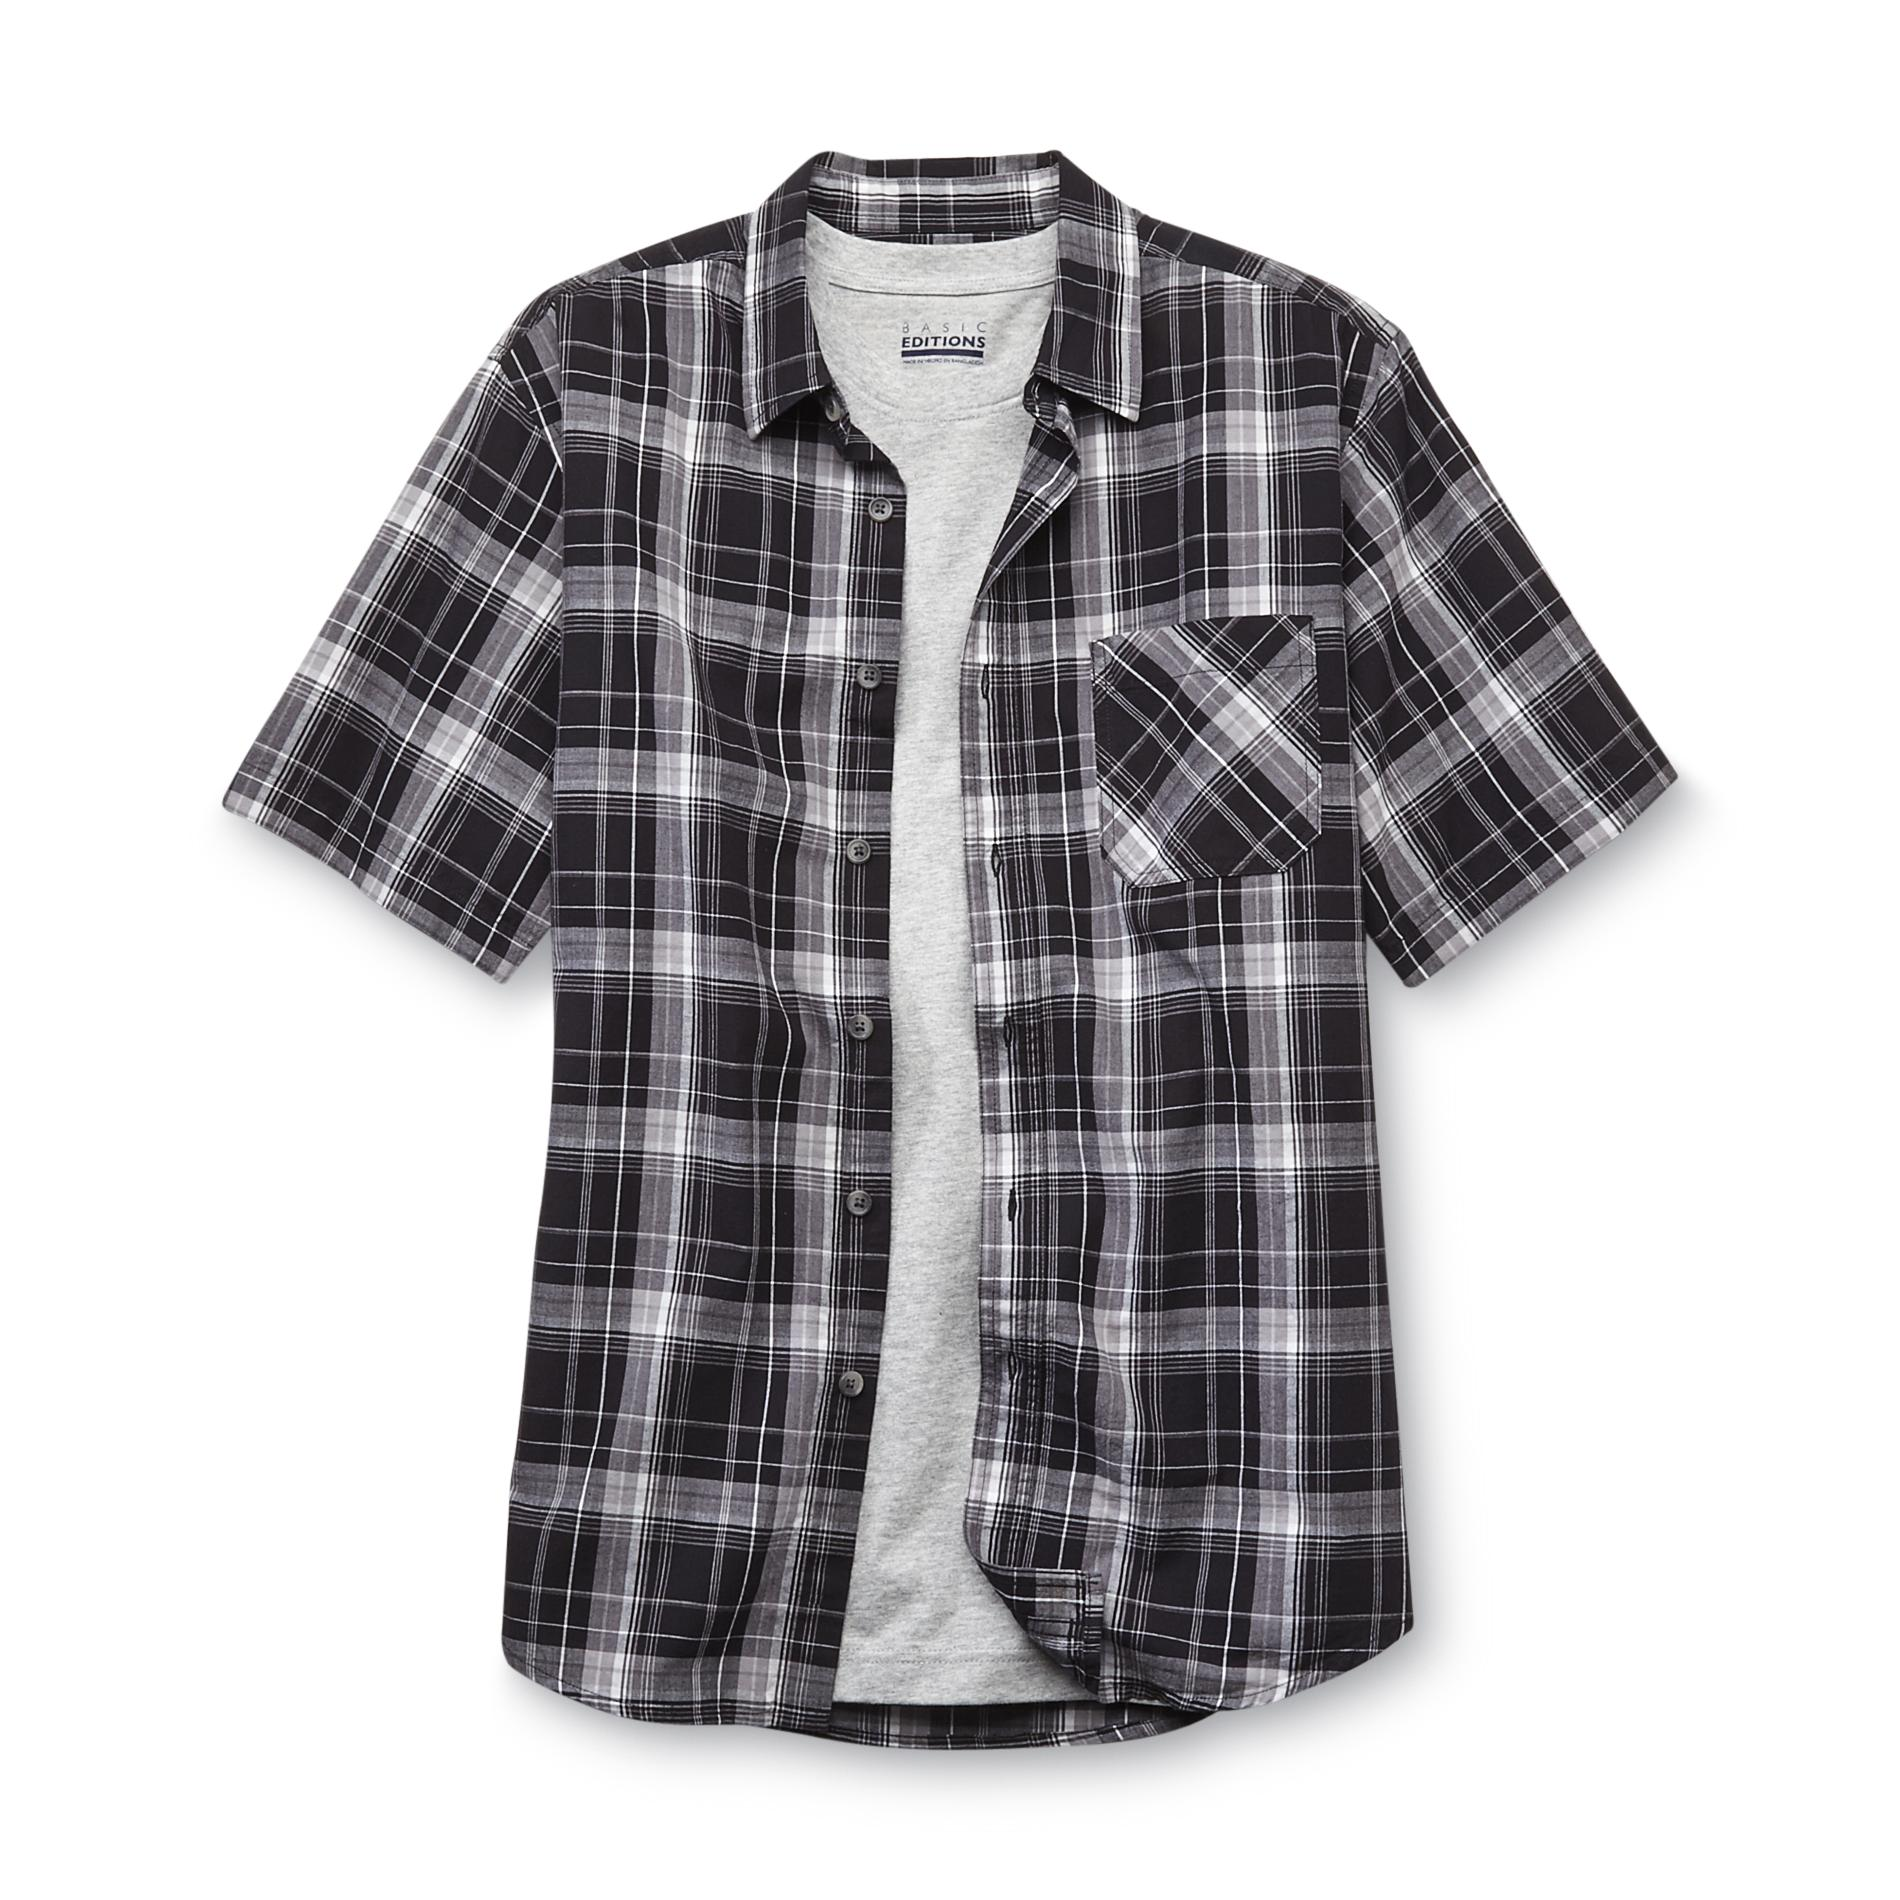 Basic Editions  Men's Button-Front Shirt